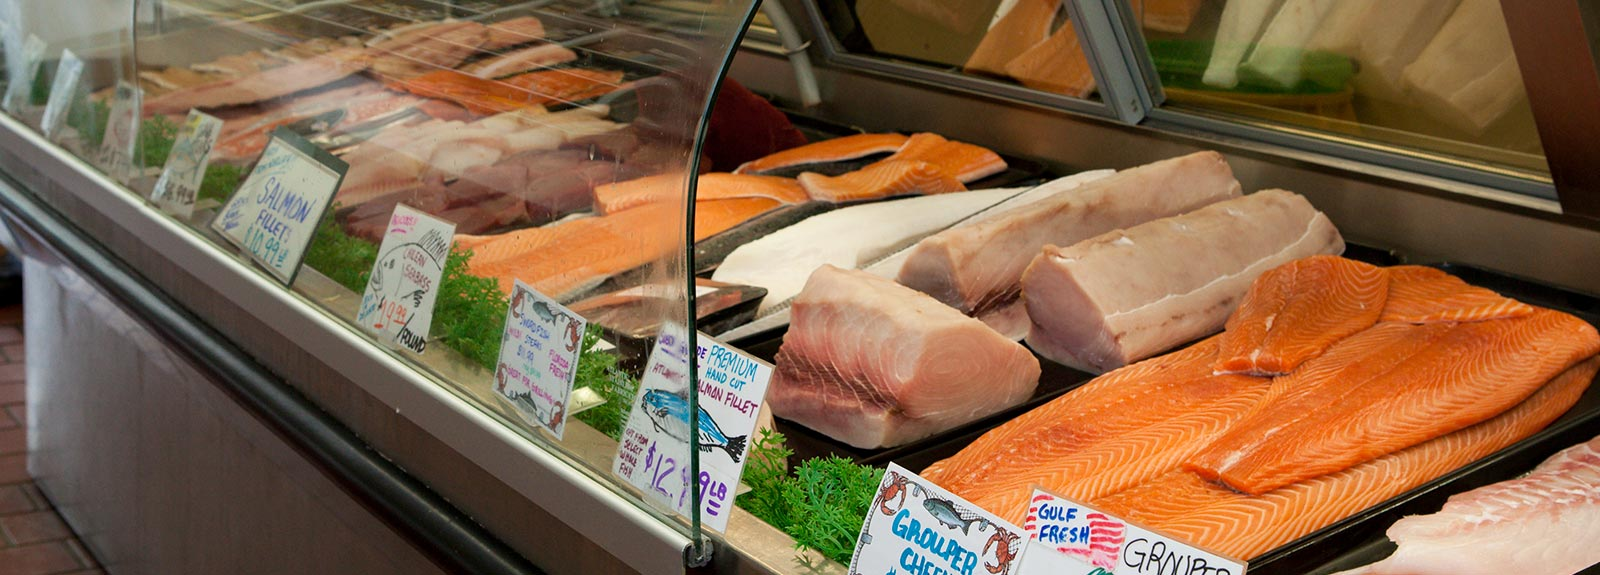 Fresh seafood in case at market